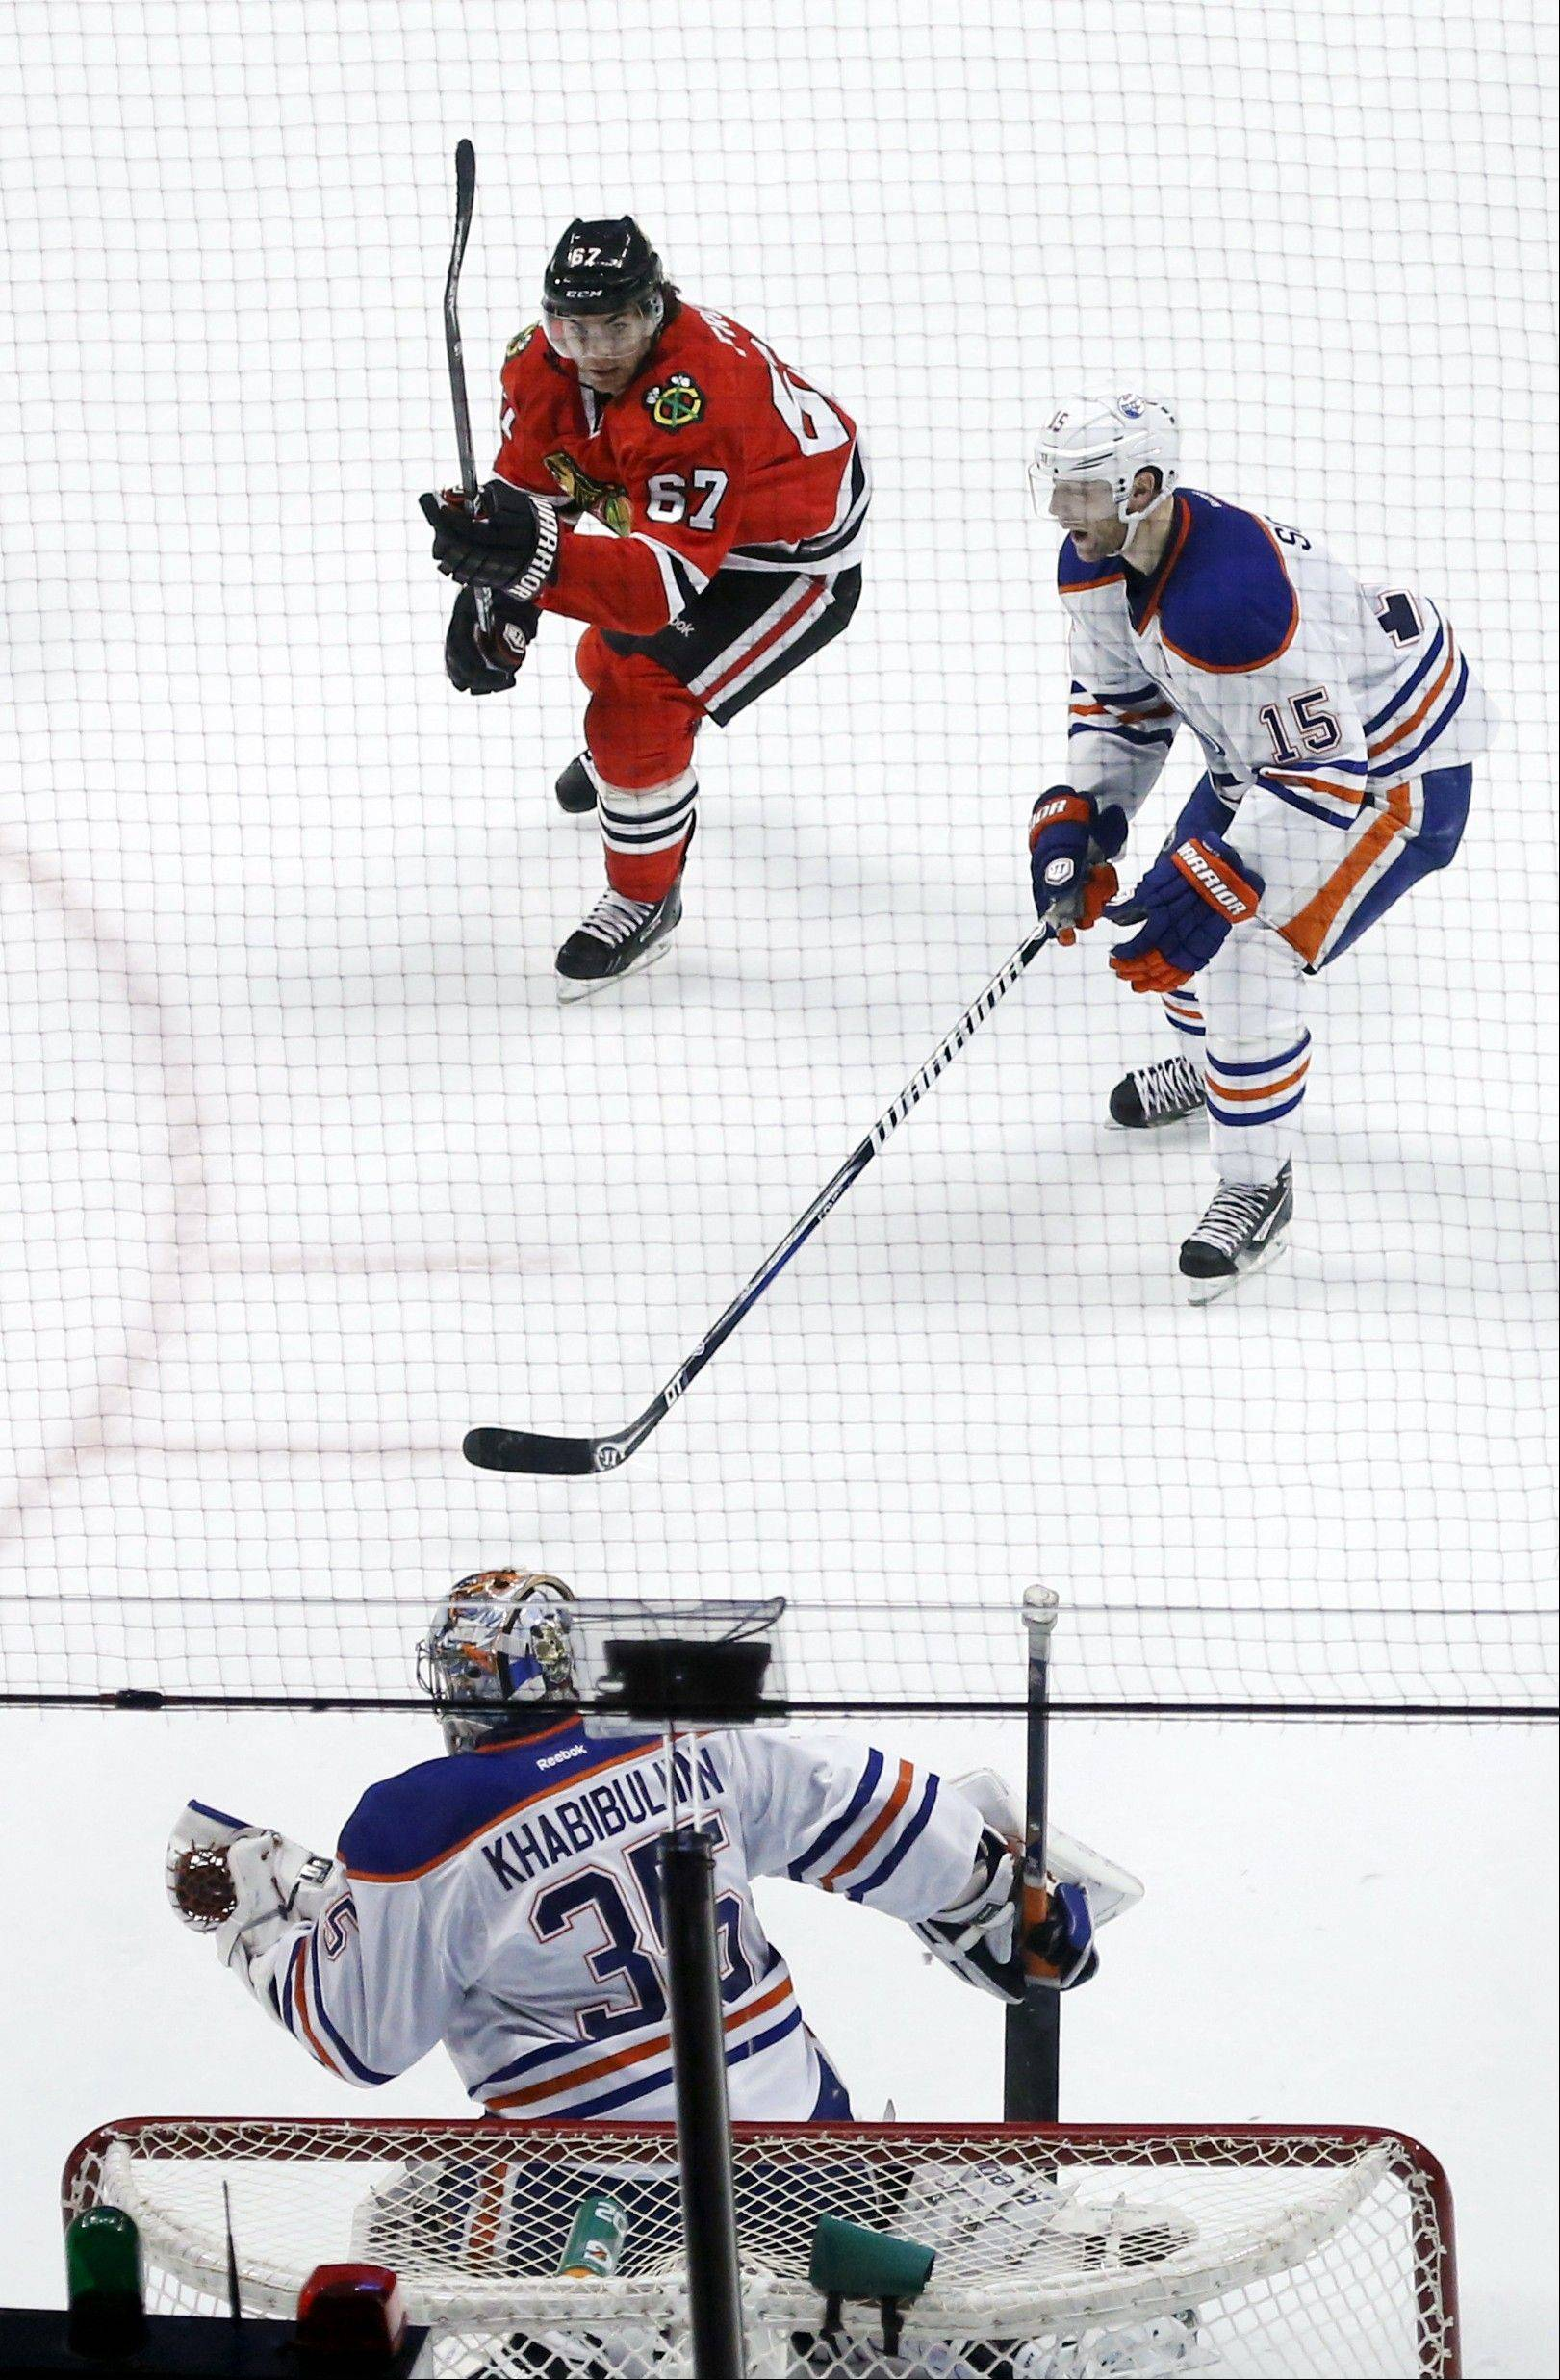 Edmonton Oilers goalie Nikolai Khabibulin makes a glove-save on a shot by Chicago Blackhawks center Michael Frolik as Oilers' Nick Schultz watches during the second period.